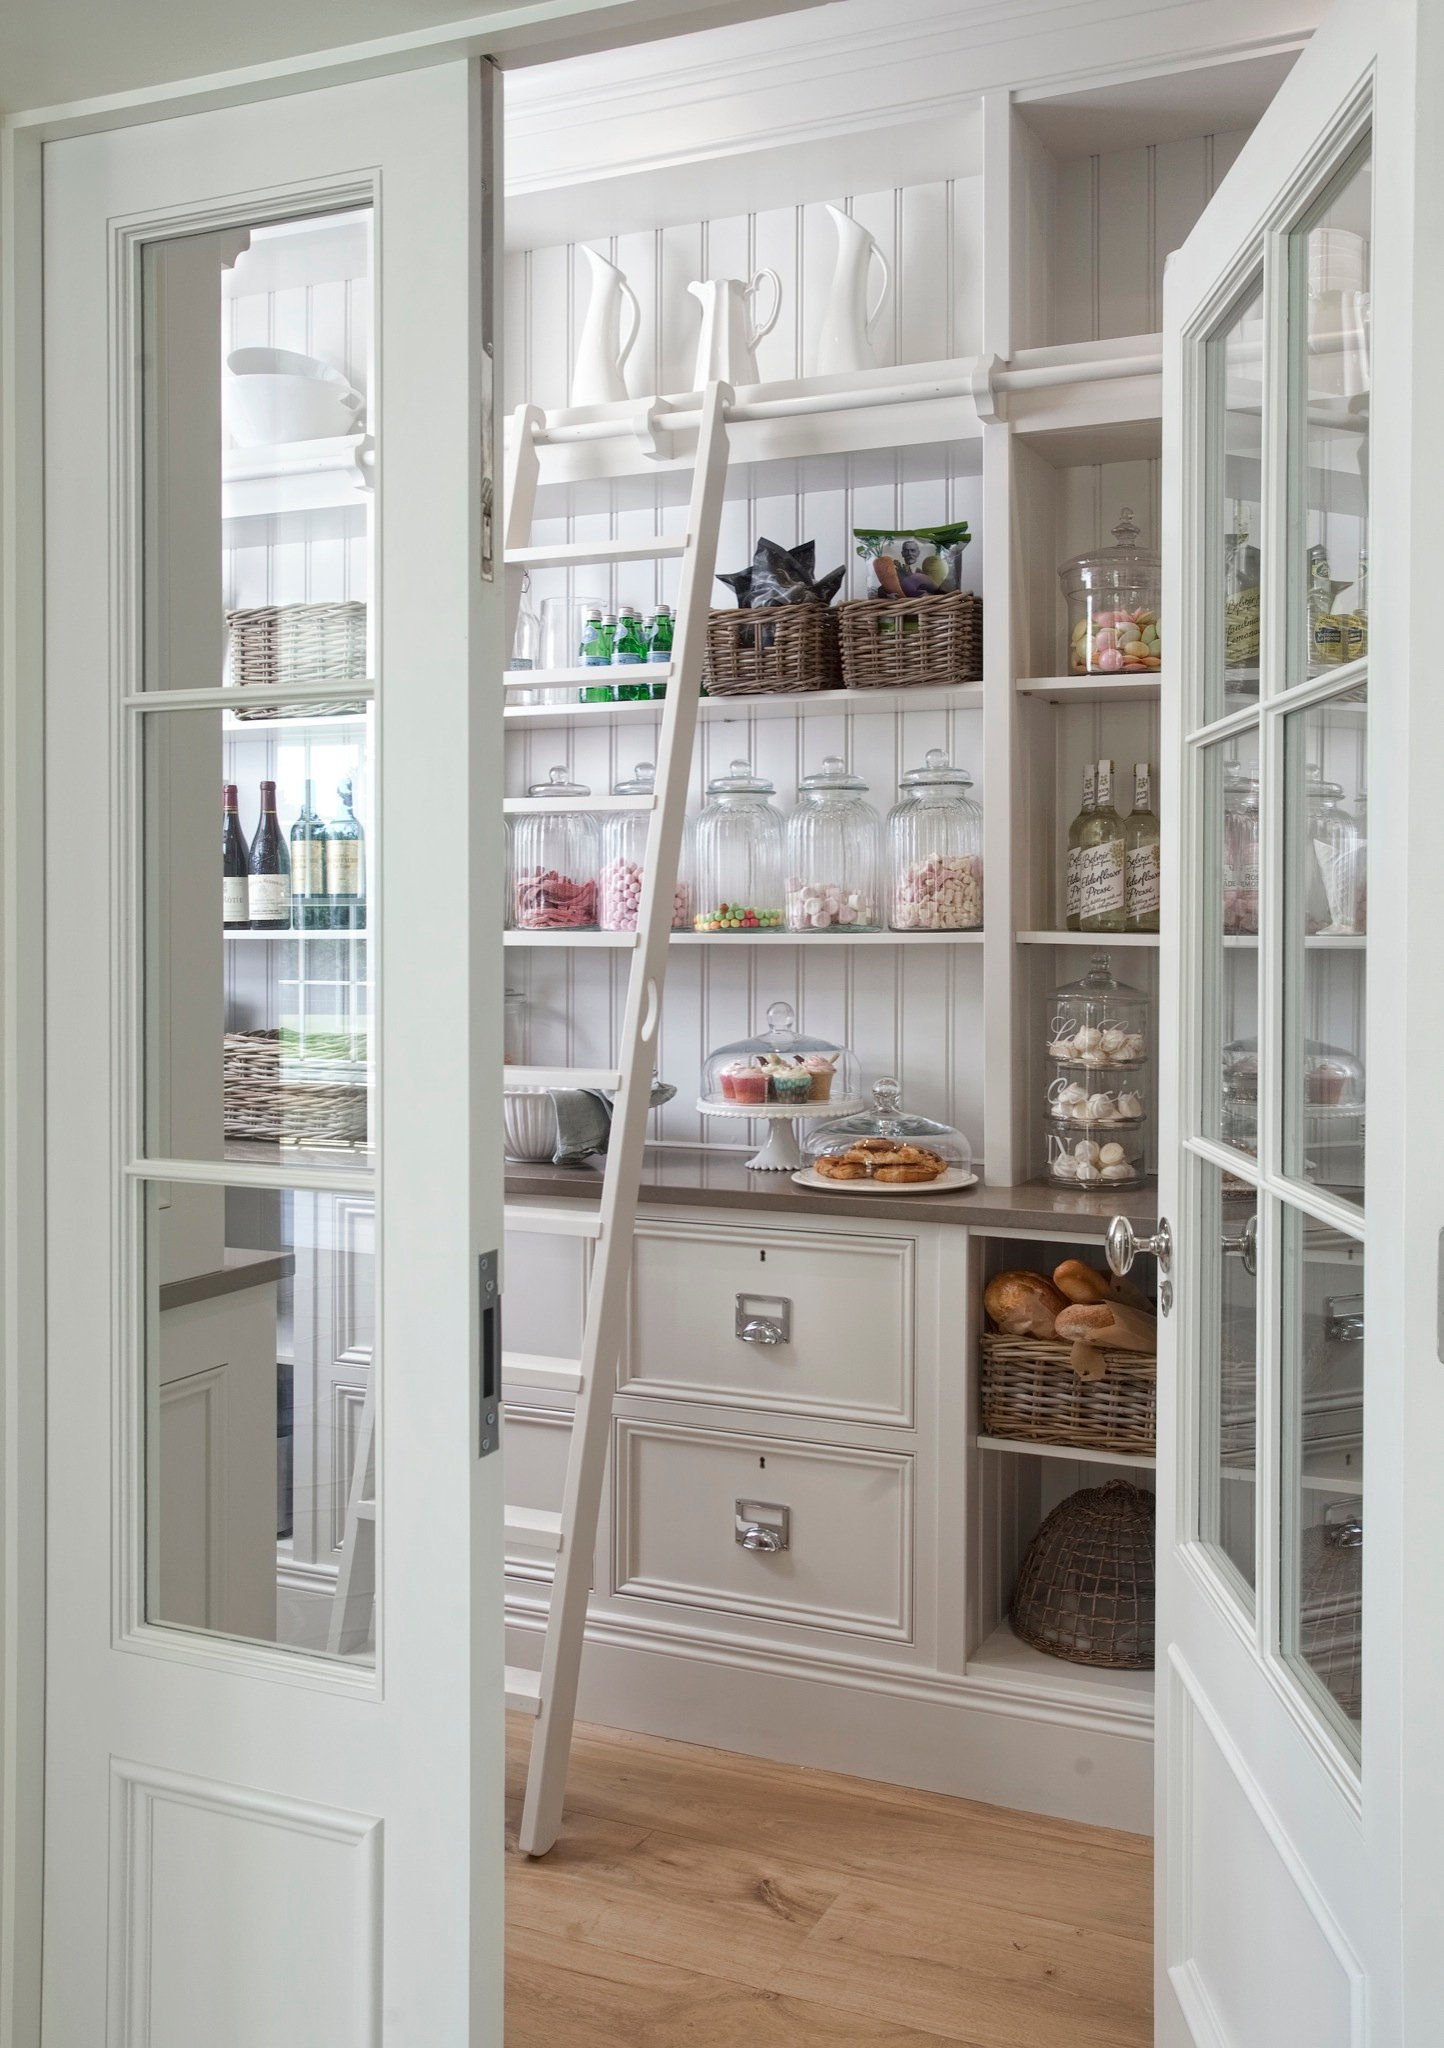 Gorgeous Butler's Pantry with Beadboard